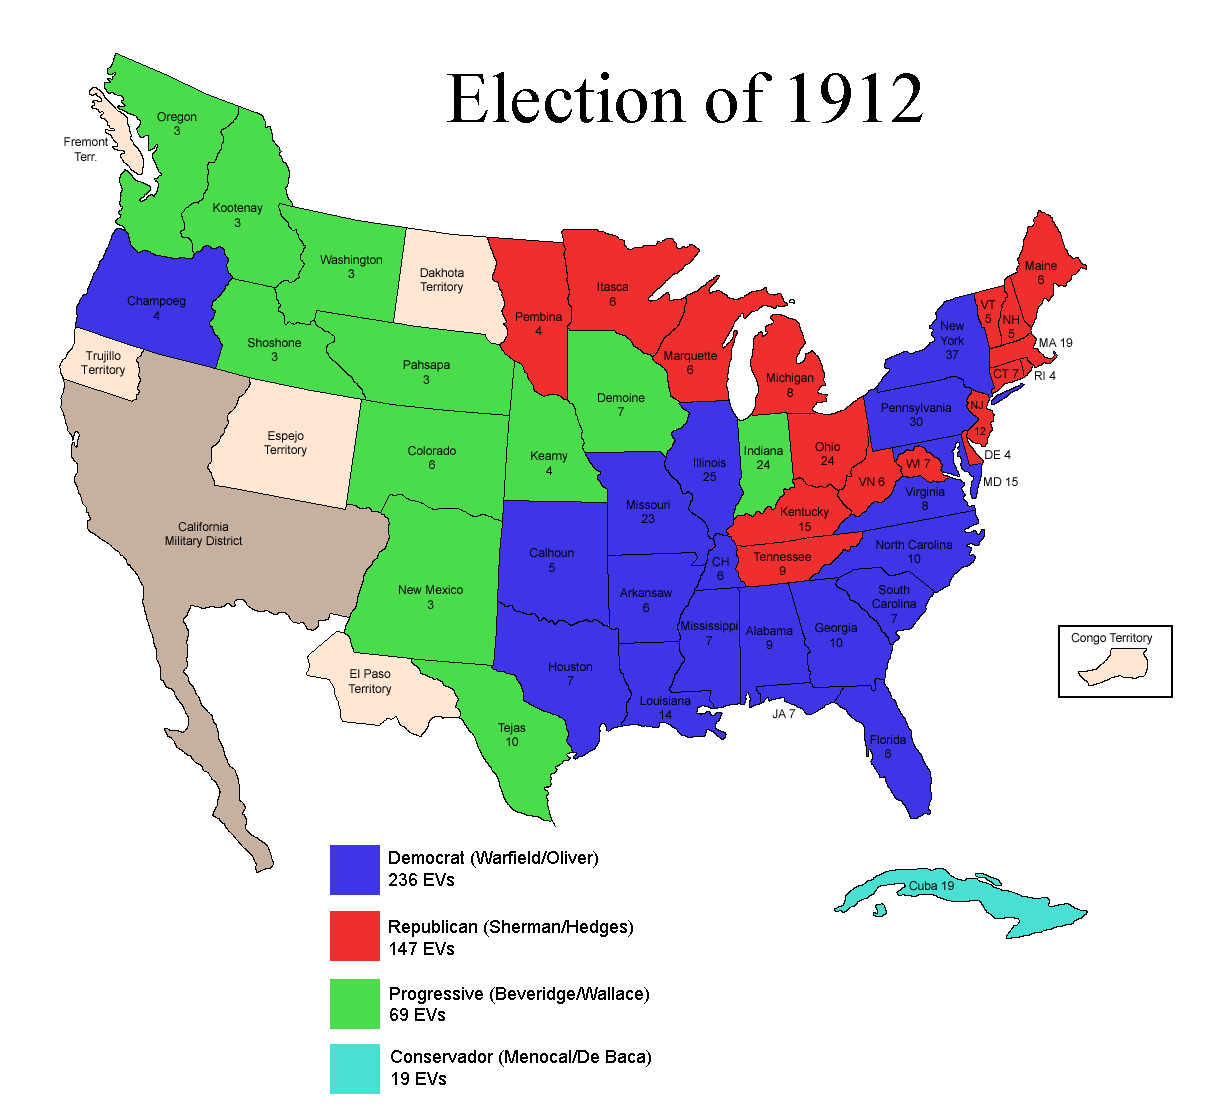 the election of 1912 In the election of 1912, the election involved a variety of political parties with  some overlapping and some clashing goals jane addams had an.